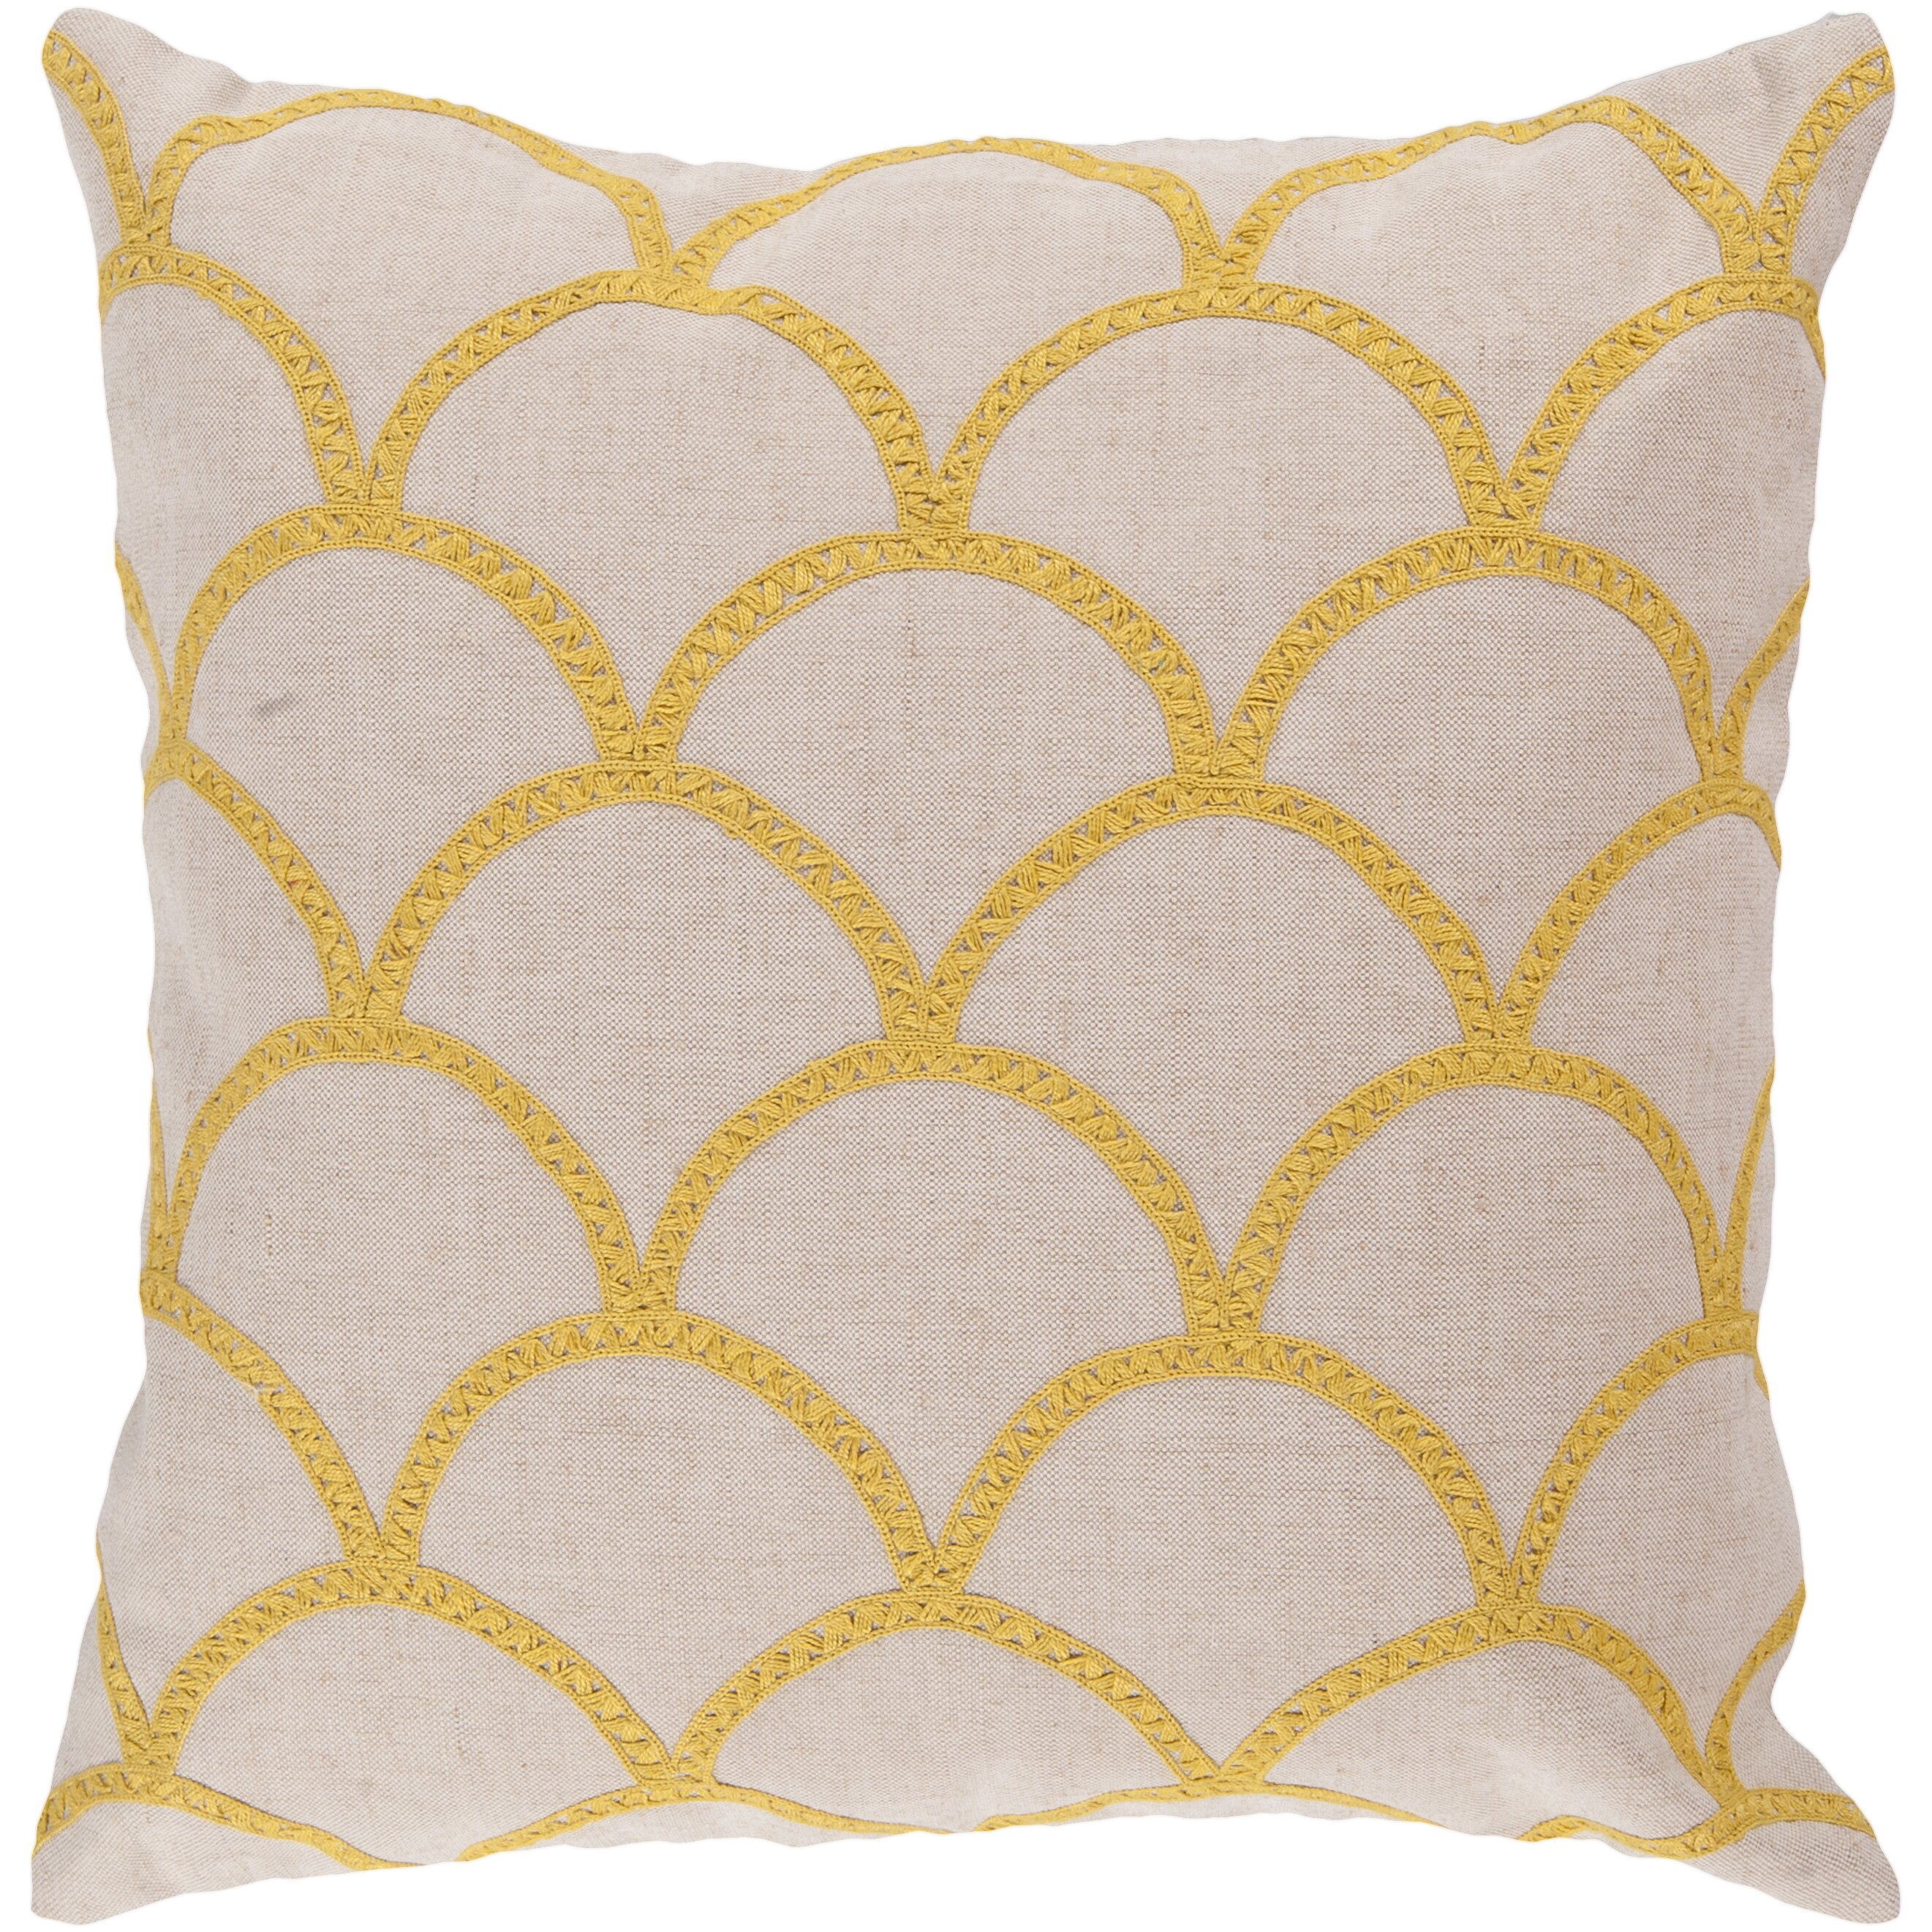 Throw Pillow Gallery : Varick Gallery Bainbridge Oval Linen Throw Pillow & Reviews Wayfair